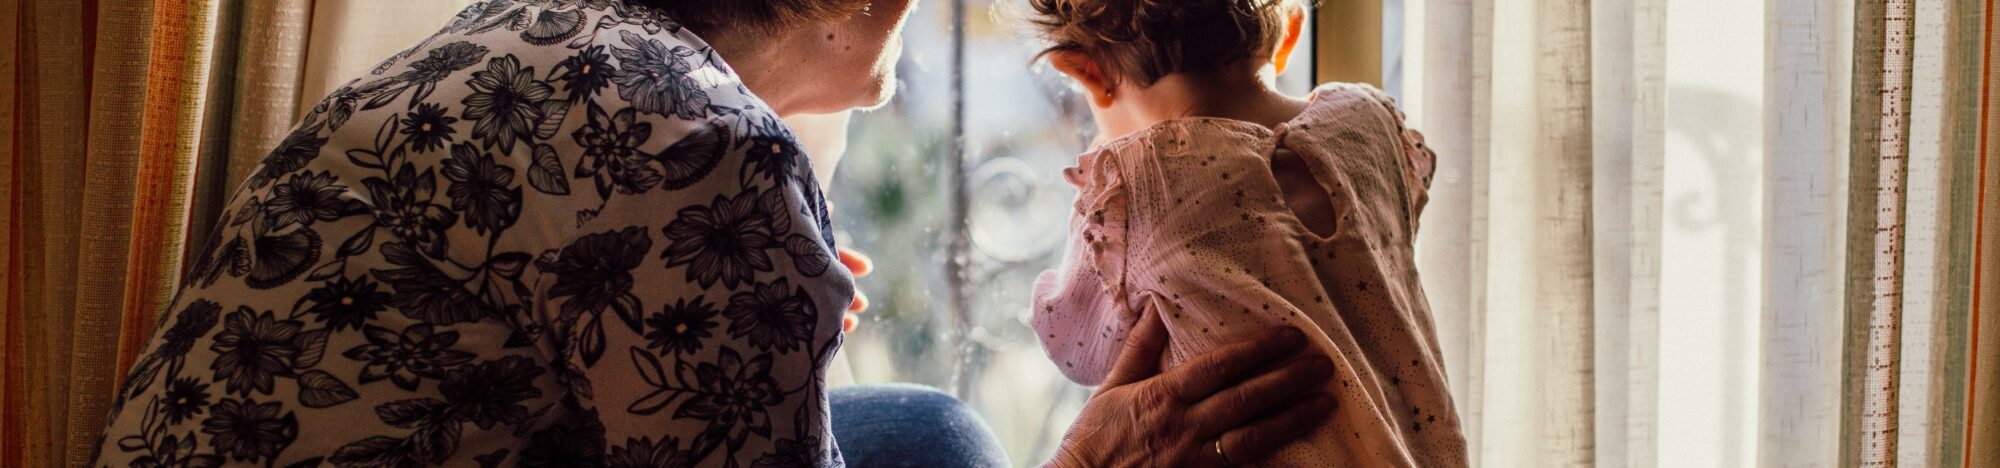 Older woman and a younger child looking out the window